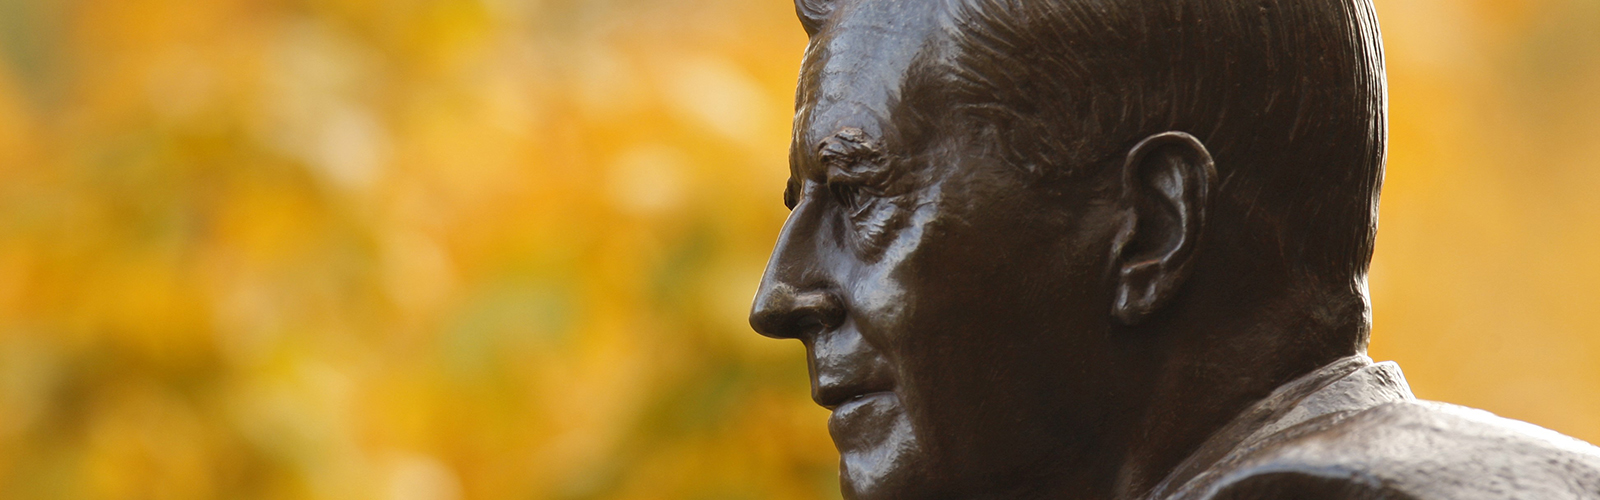 closeup of a statue of Harold Stirling Vanderbilt with trees in the background, located on the Vanderbilt campus